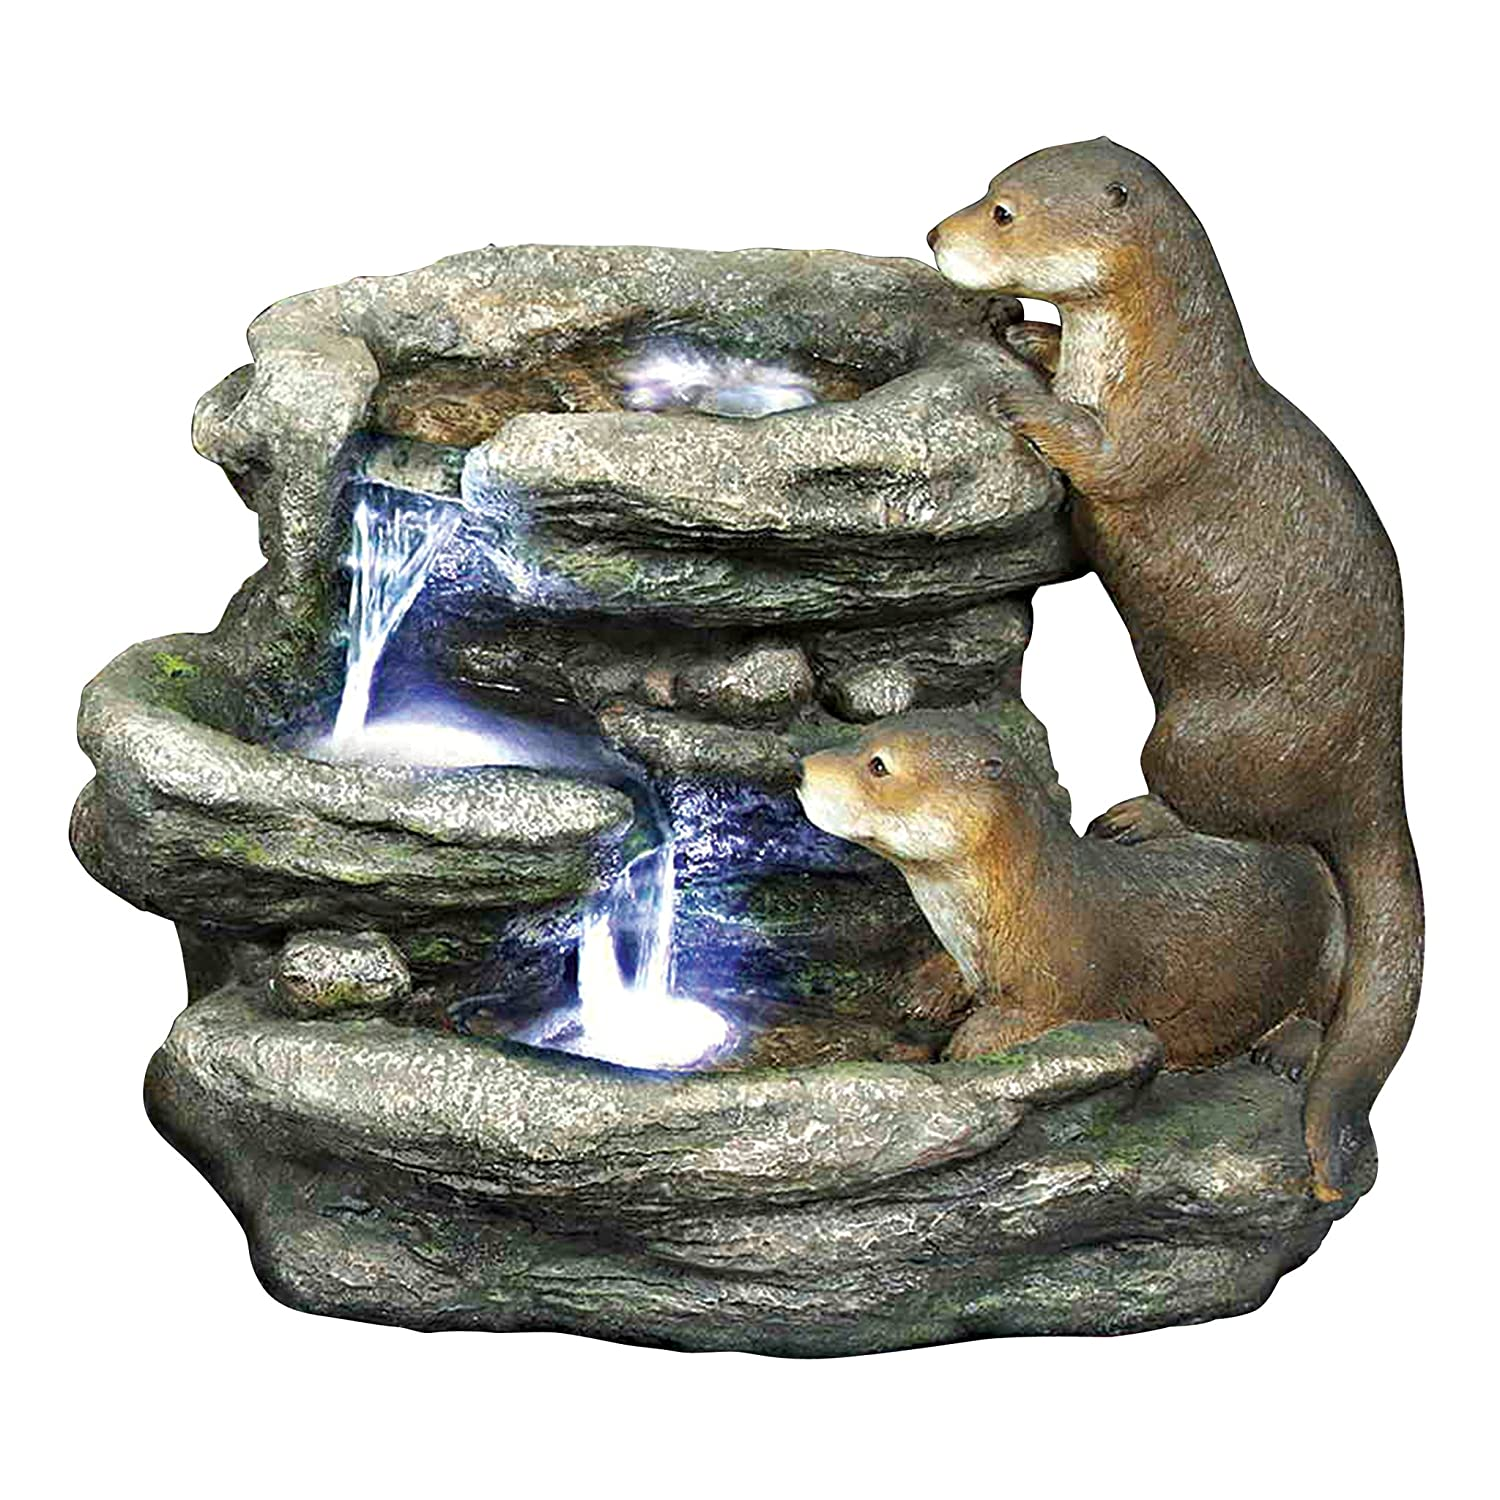 Bright Waters  Otters Water Fountain with LED Light - Bright Waters Otters Garden Decor Fountain - Outdoor Water Feature